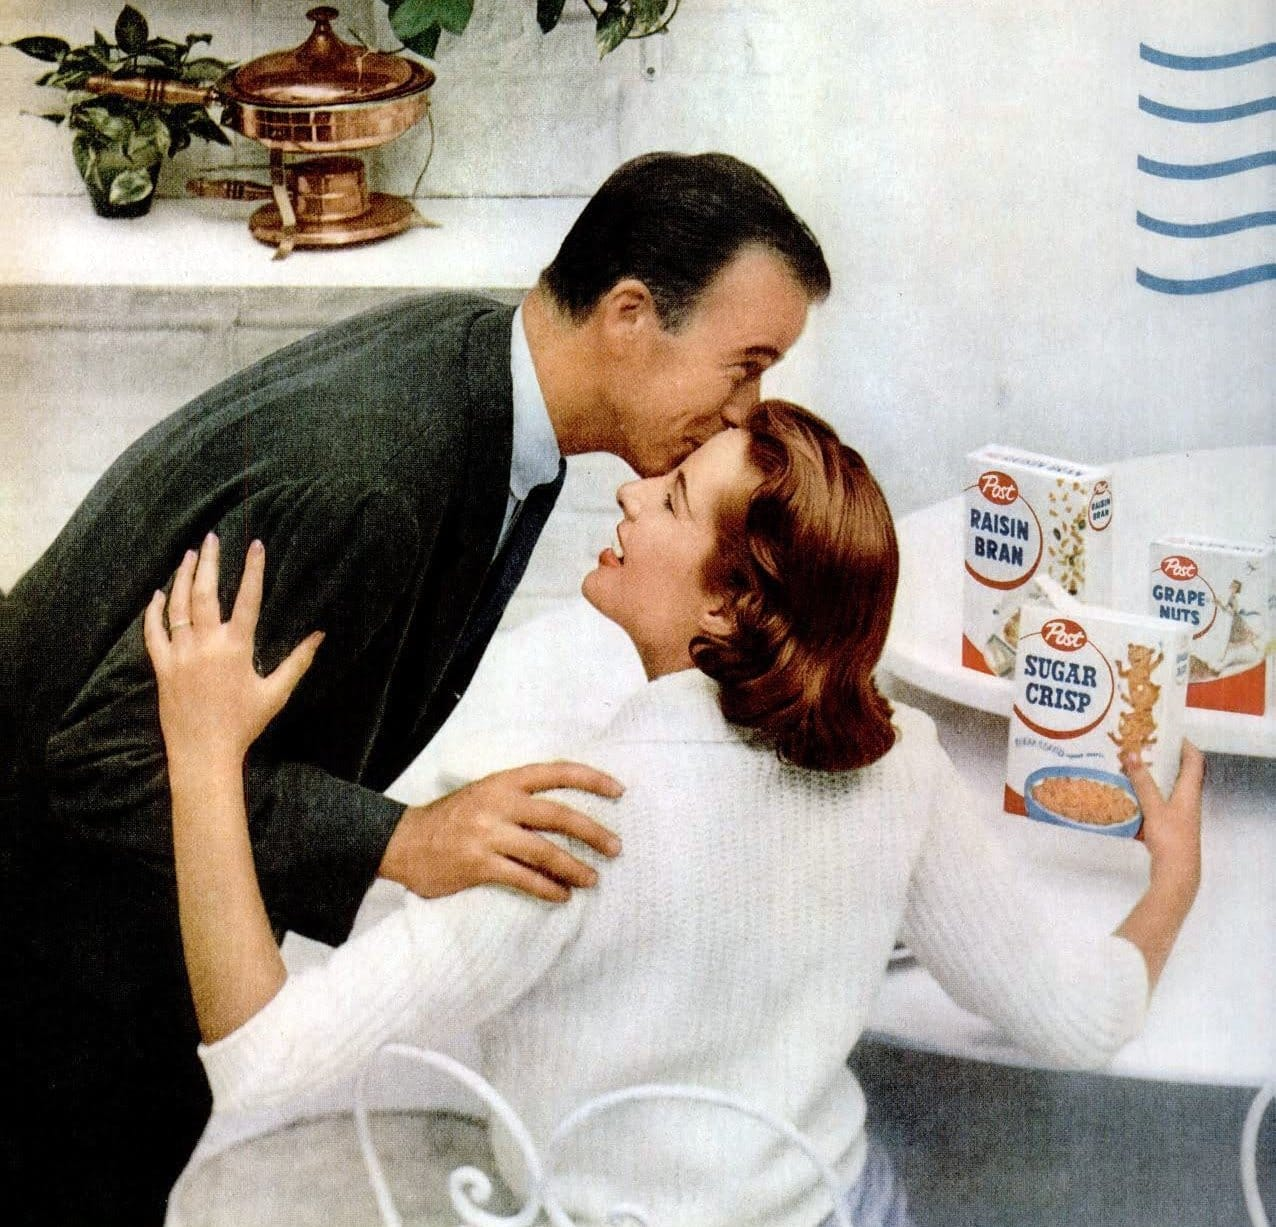 Vintage 1950s breakfast cereals from Post (1956)